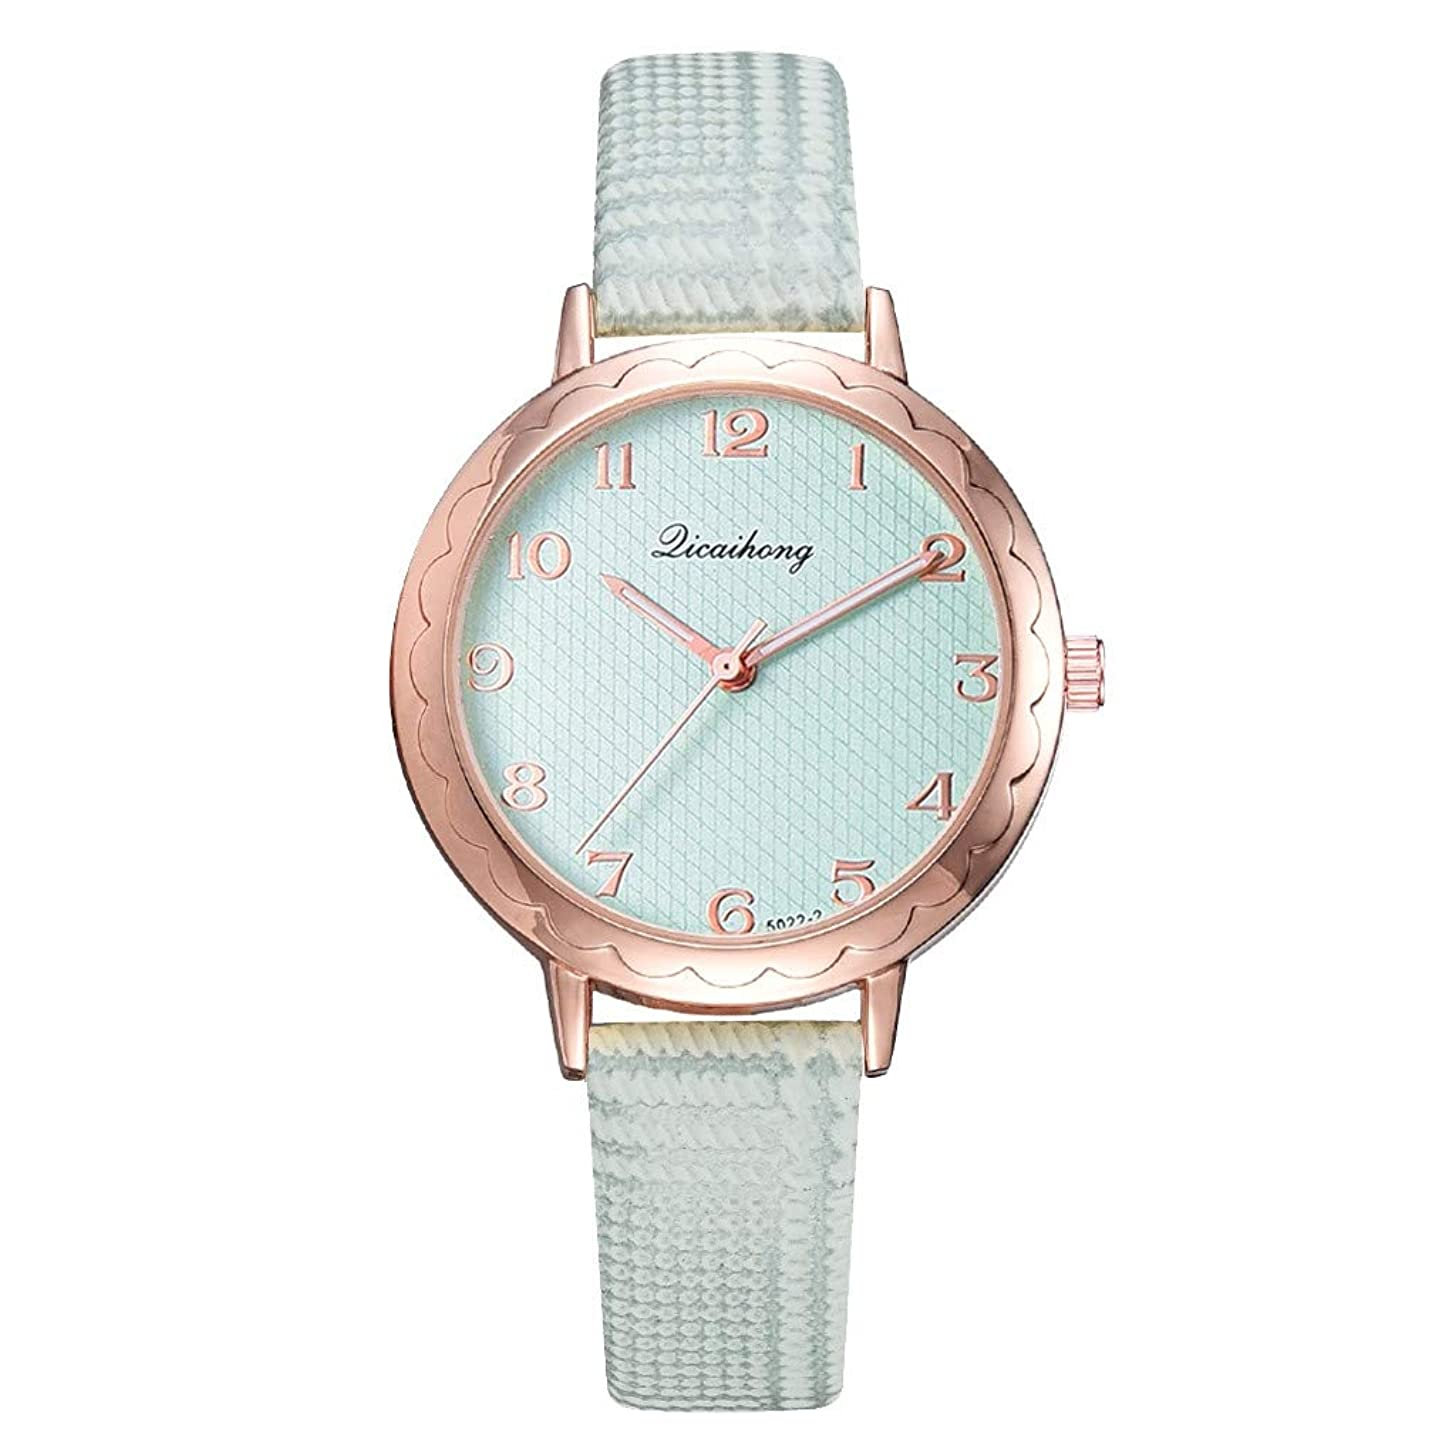 LUCAMORE Wrist Watch, Women Quartz Stainless Steel Watch Leather Band Watch Fashion Gift